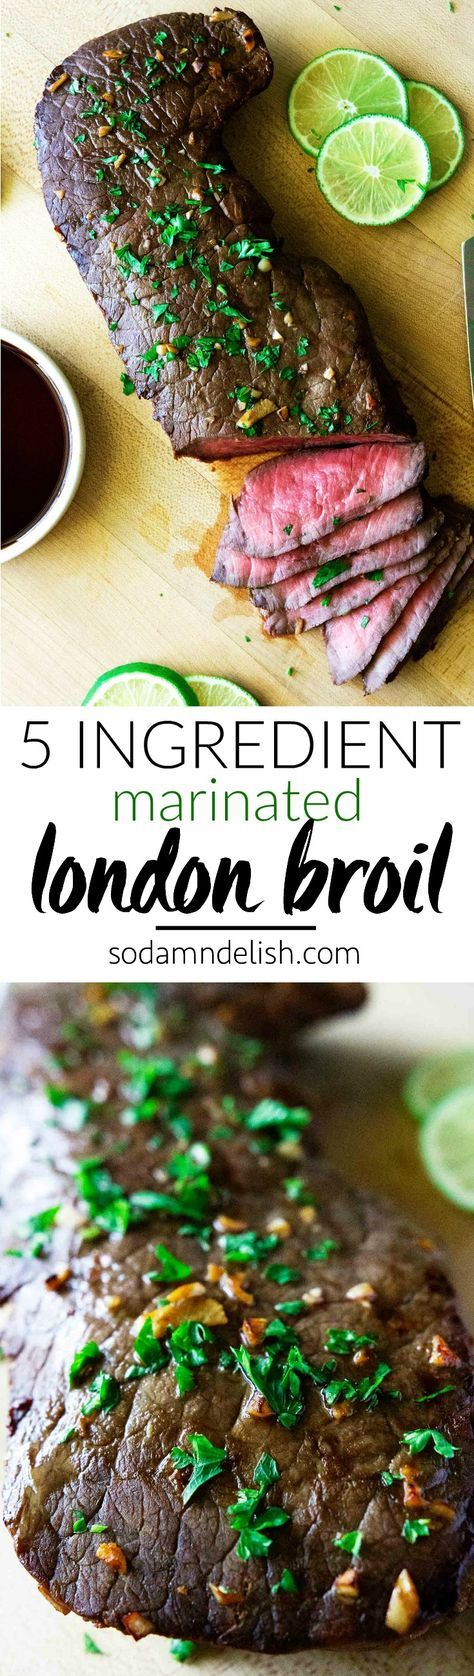 This marinated london broil recipe is so super easy! It has only 5 ingredients and takes under 10 minutes to cook! It's a surefire hit for all steak lovers out there.   #londonbroil #steak #londonbroilmarinade #steakmarinade